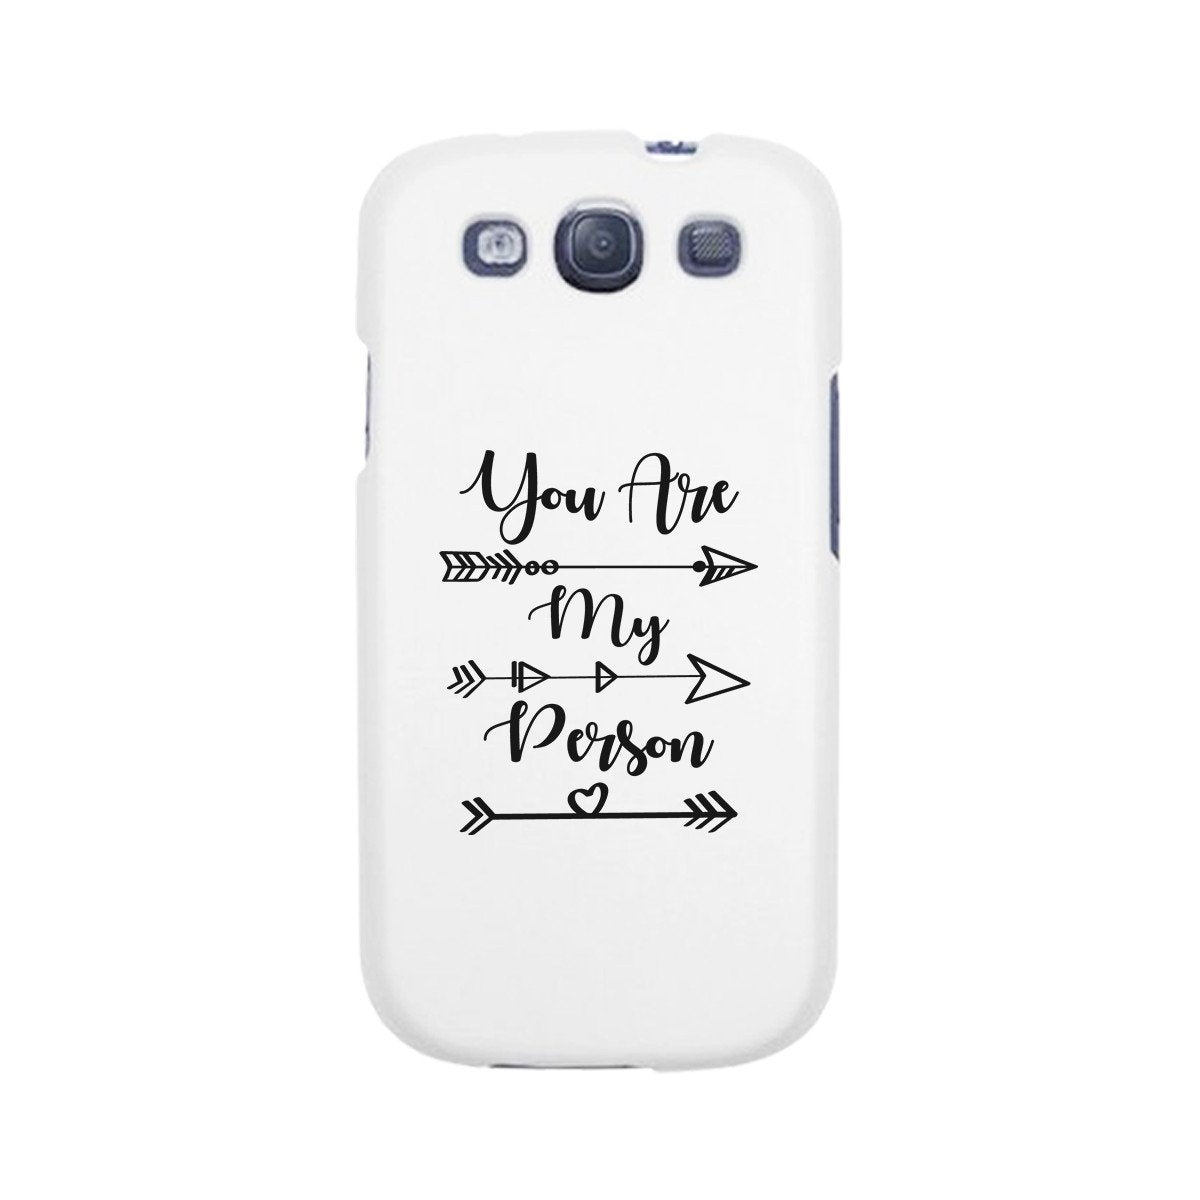 You Are My Person - White Phone Case